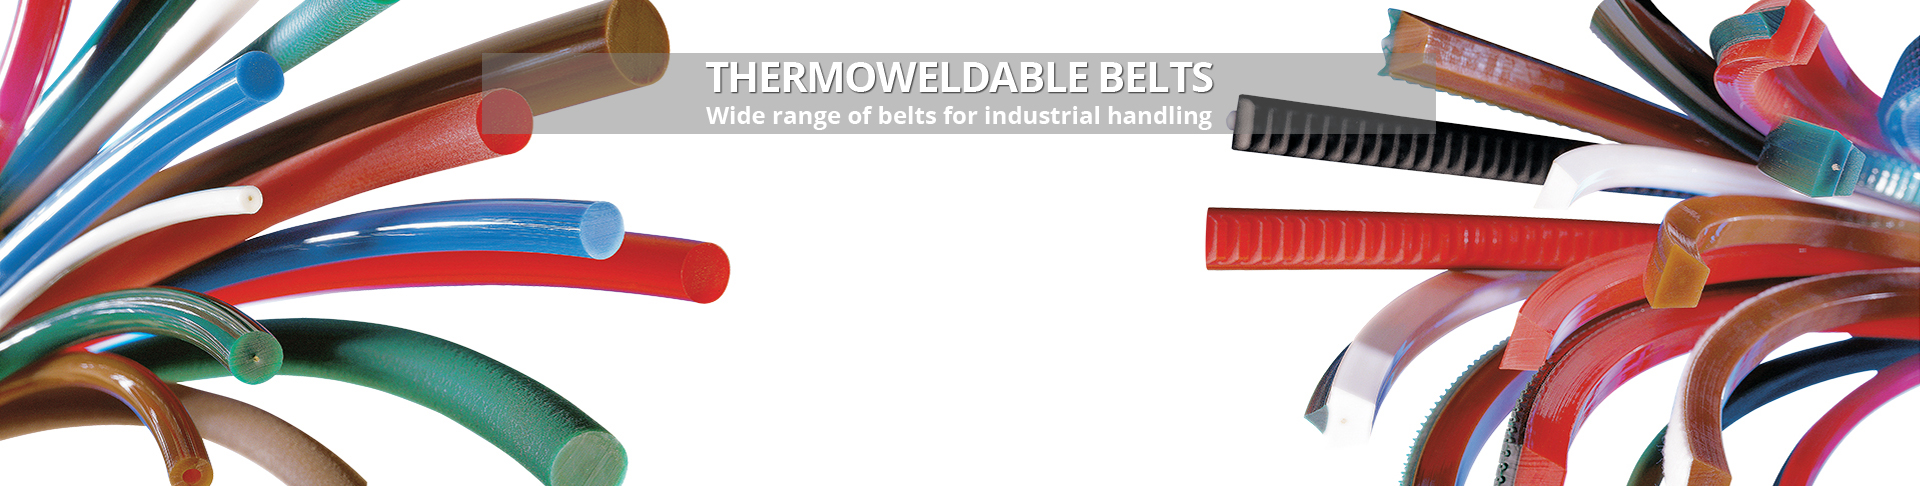 thermoweldable-belts-slide